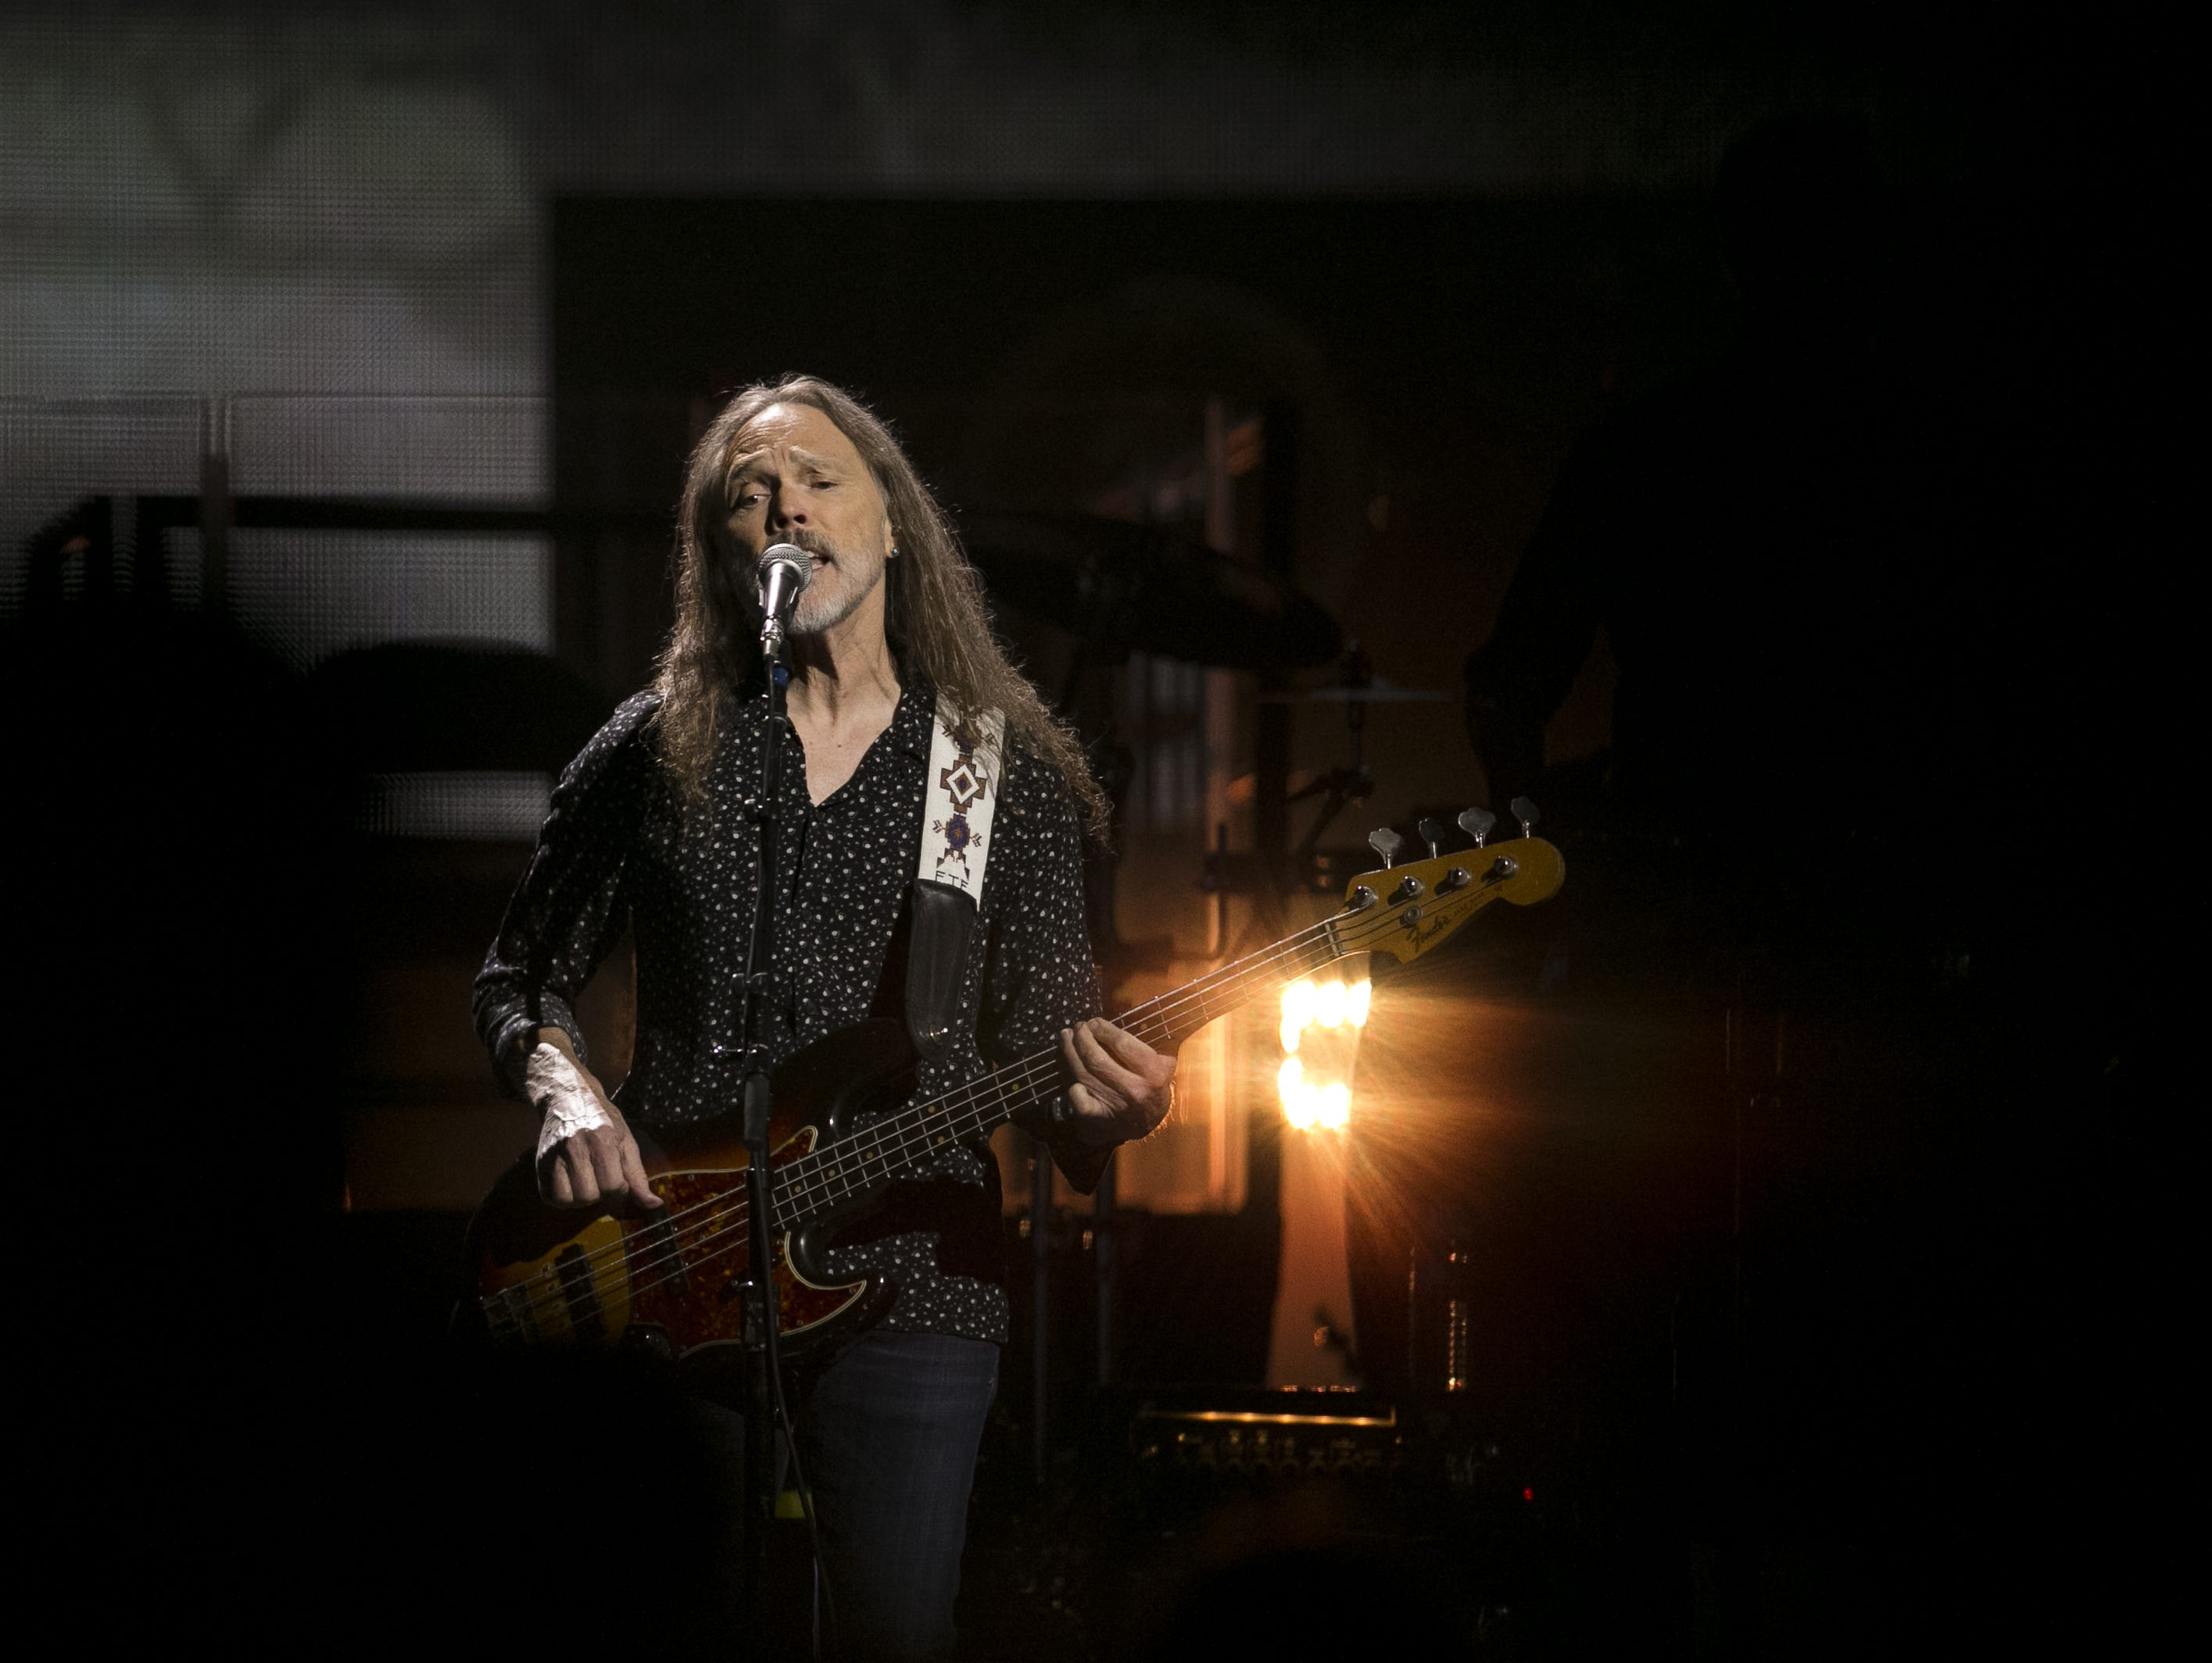 Timothy B. Schmit performs with the Eagles at Talking Stick Resort Arena in Phoenix on Sat. Sep. 8, 2018.